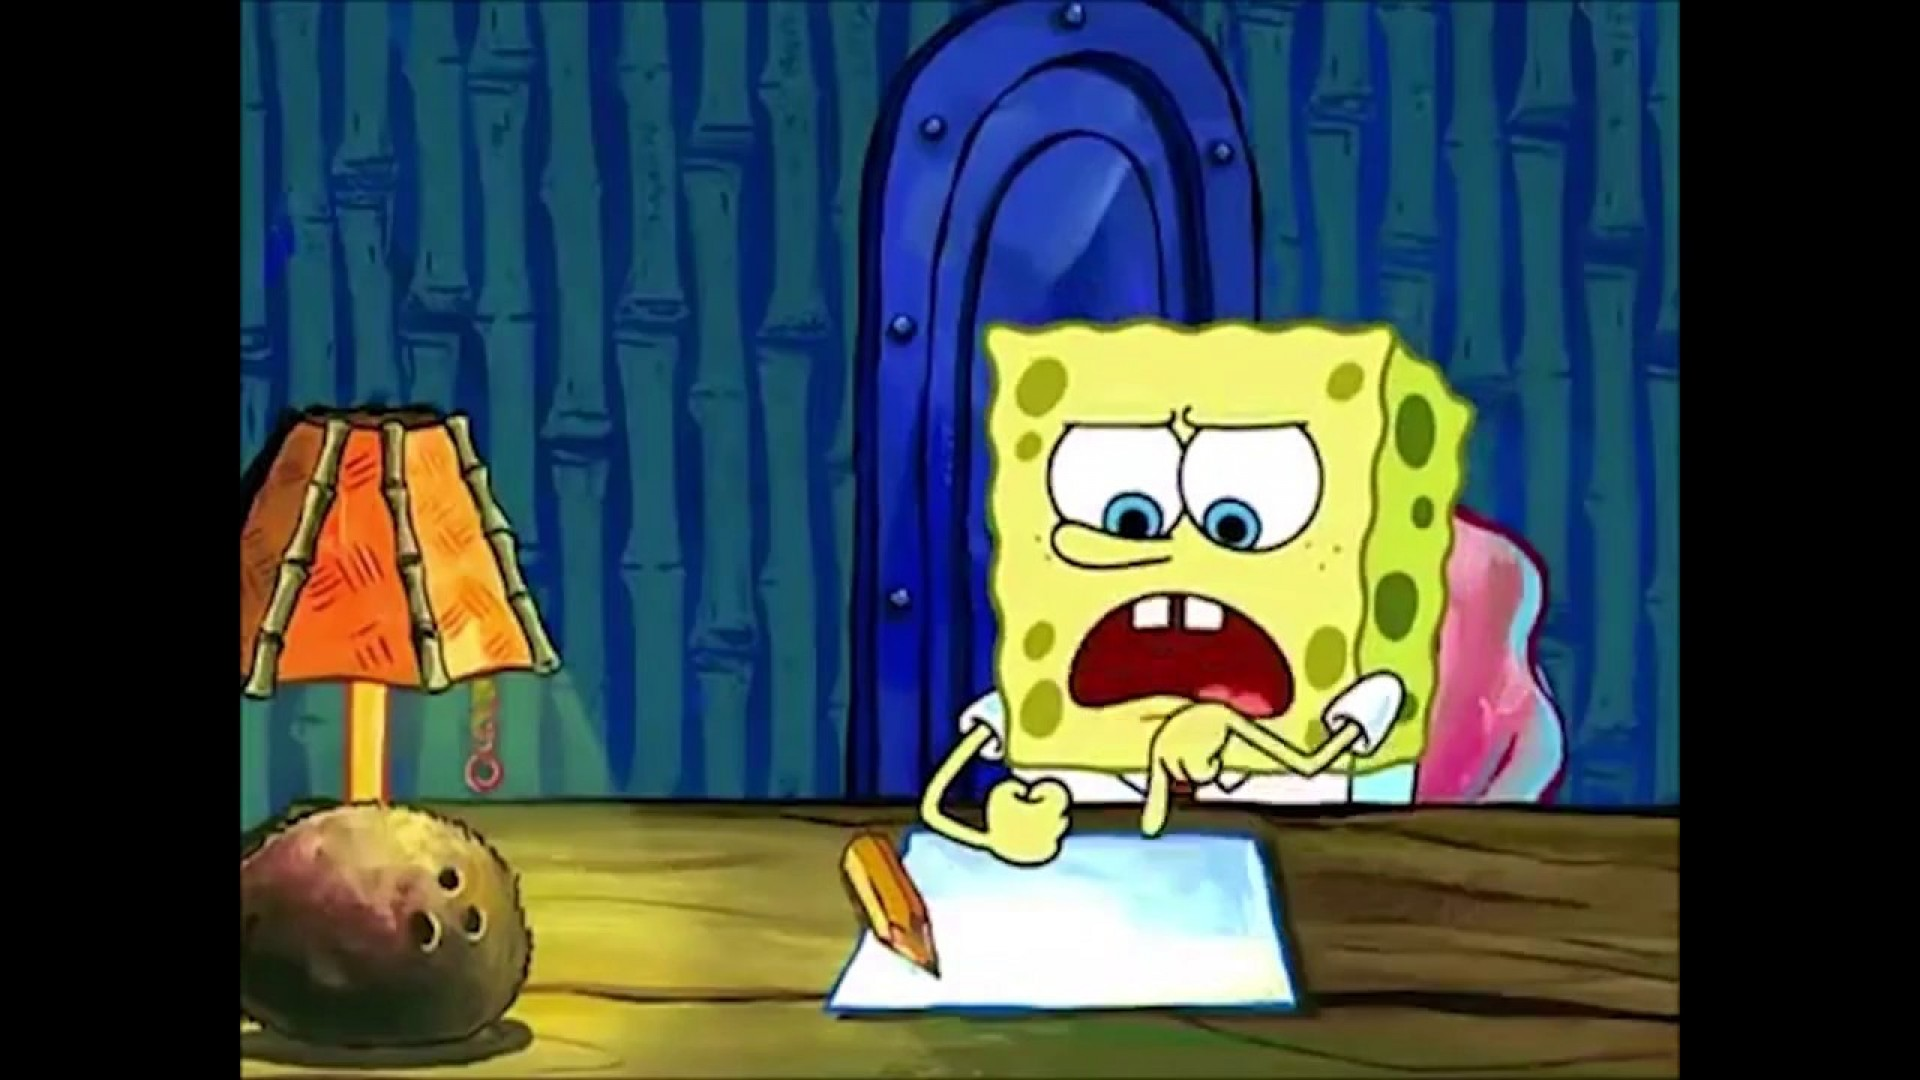 002 Essay Example Spongebob Spongebobs Youtube Maxresde Writing For Hours Rap The Font Meme Surprising Pencil 1920